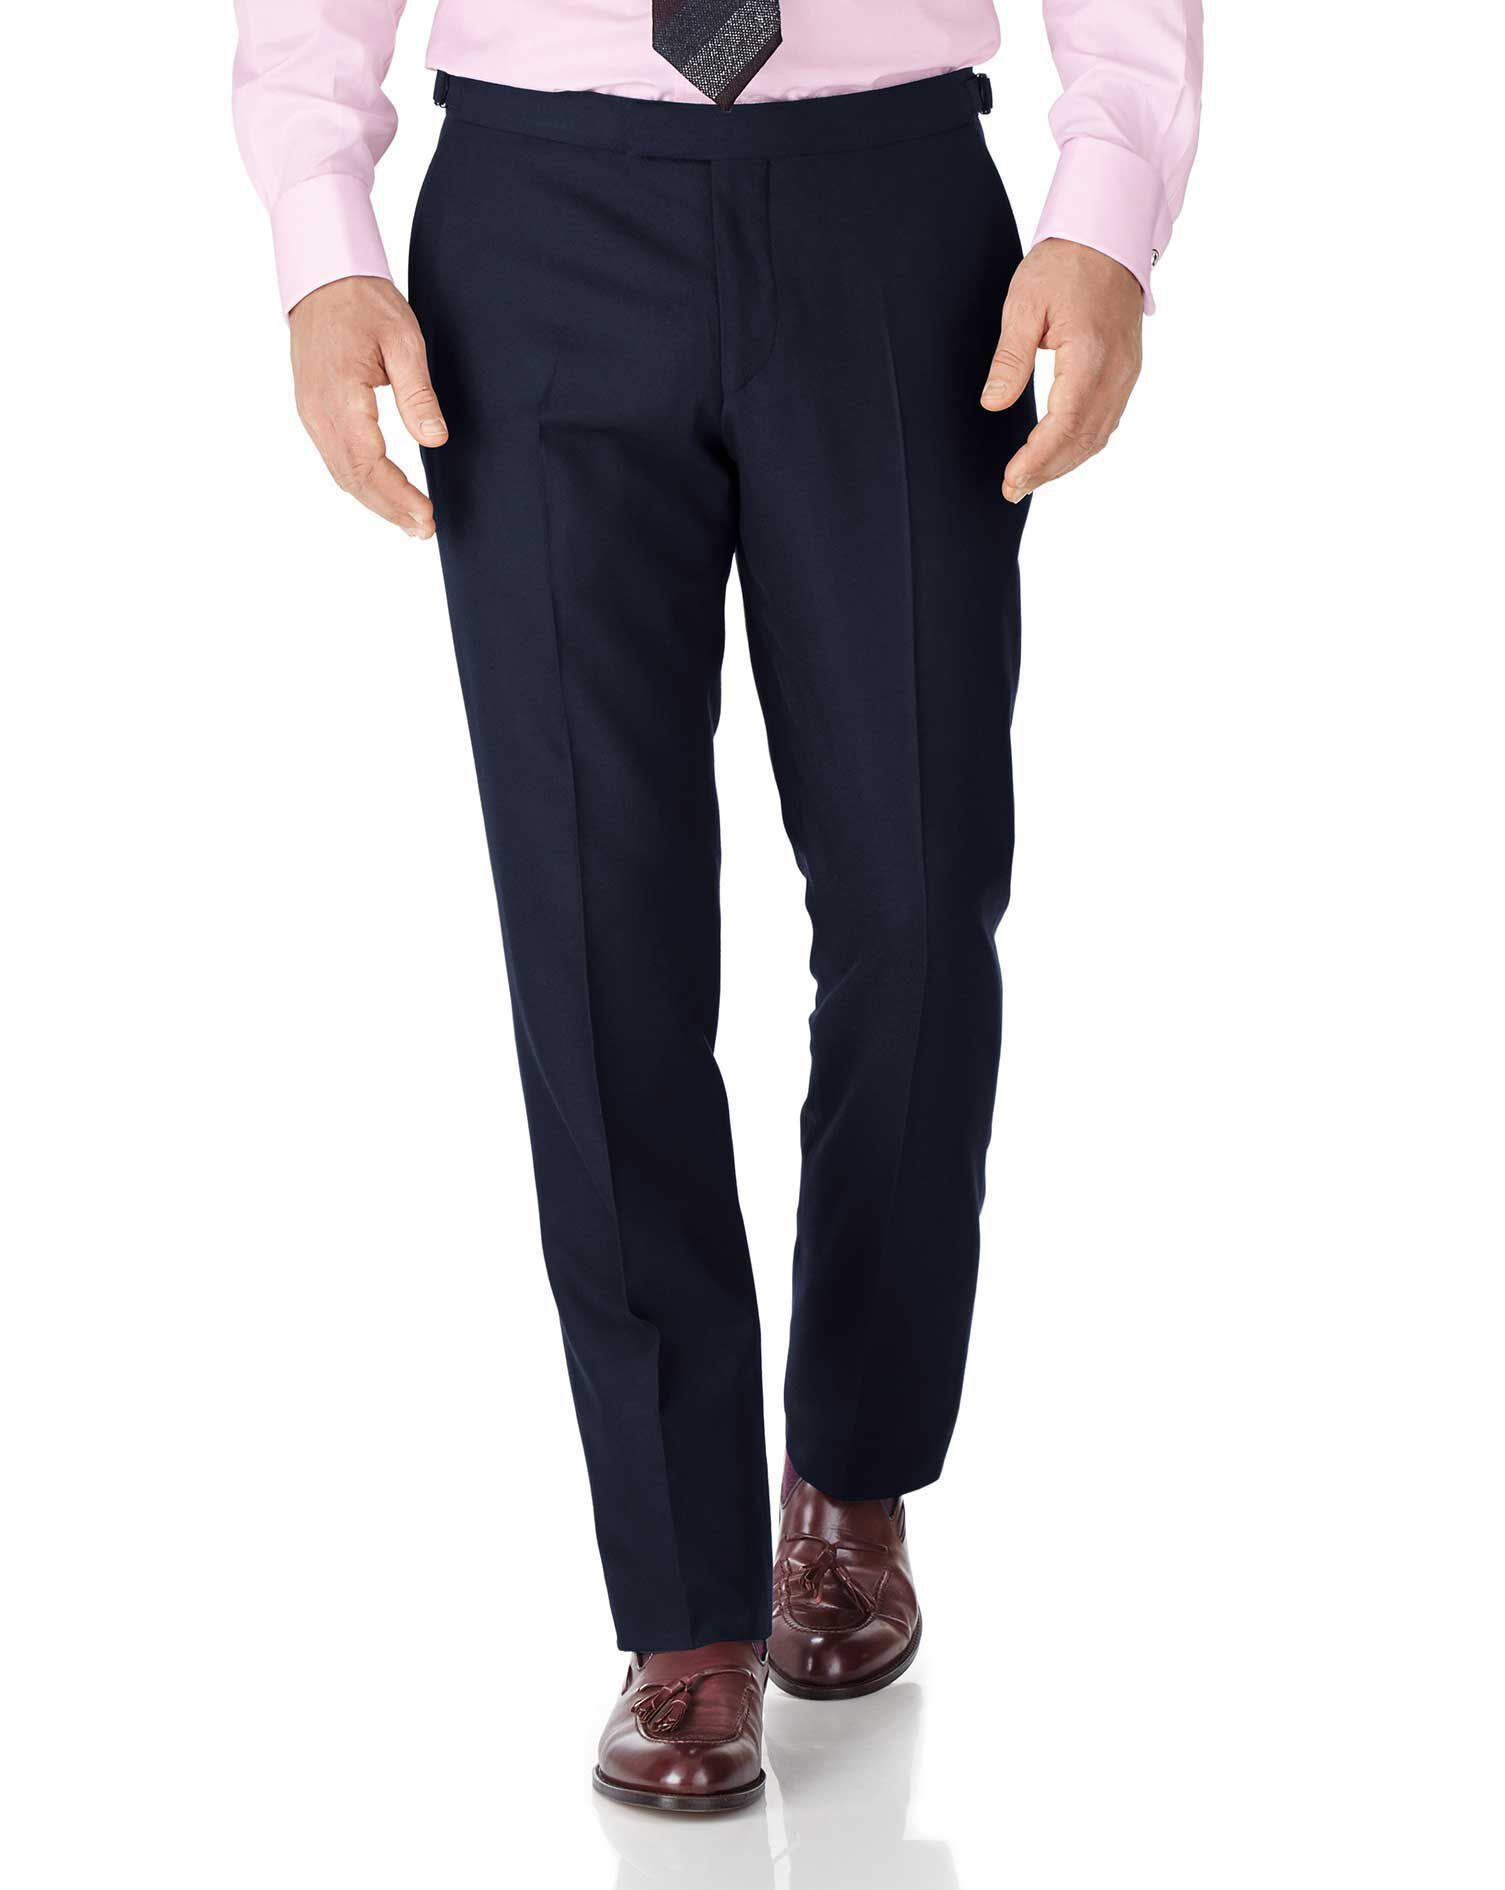 Navy Classic Fit British Serge Luxury Suit Trousers Size W34 L34 by Charles Tyrwhitt